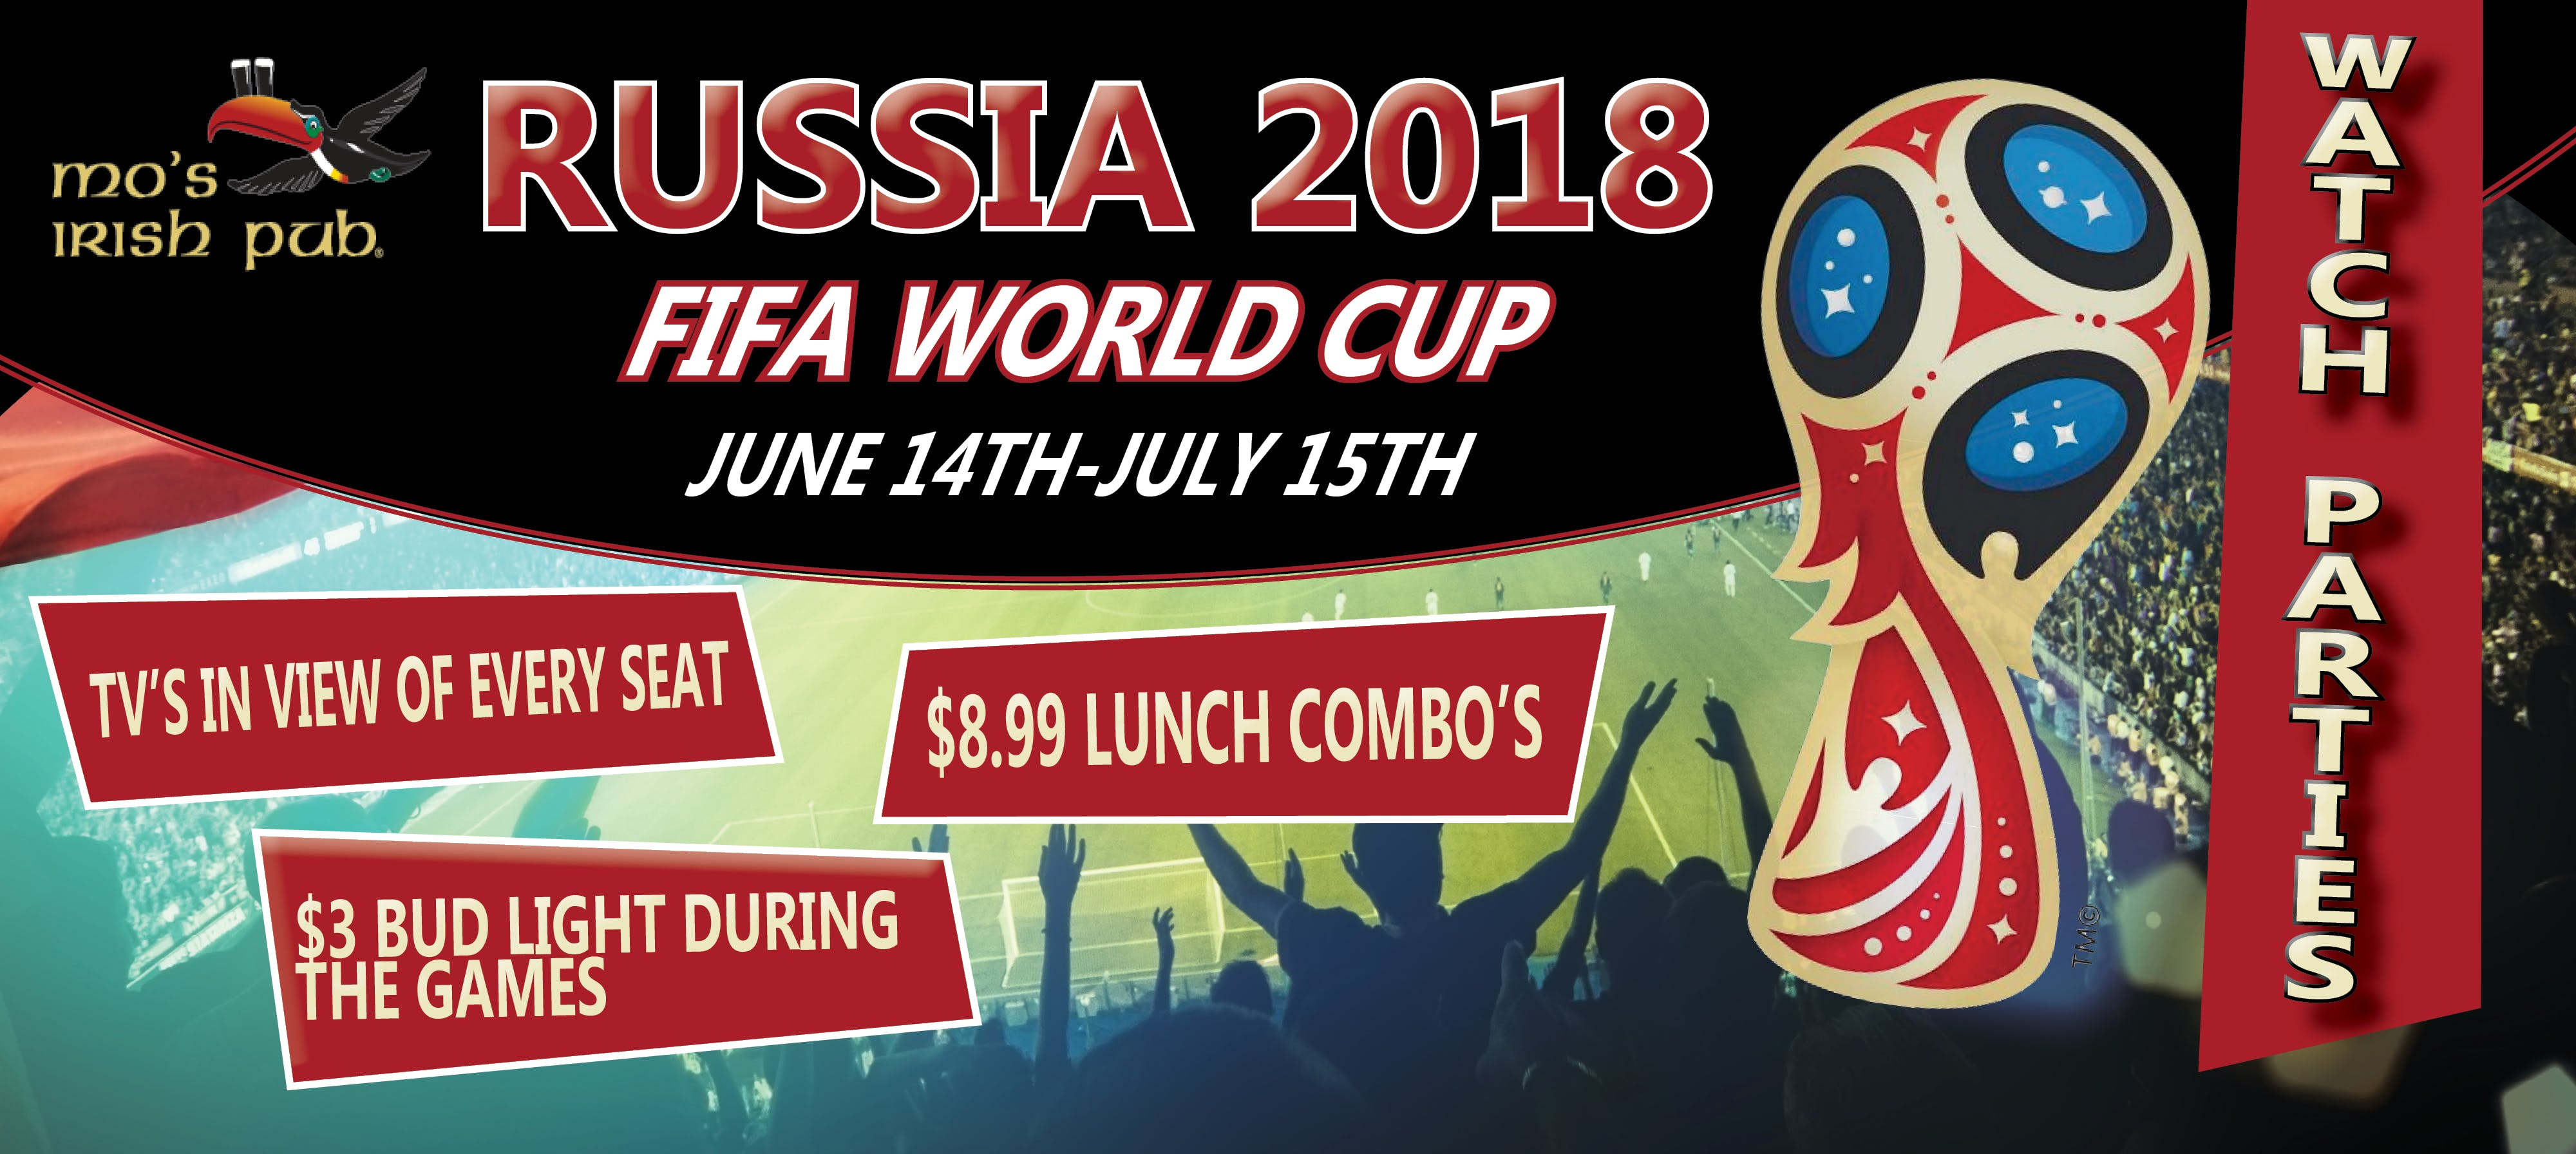 daf96d8f7925 FIFA World Cup Watch Parties! at Mo s Irish Pub Vintage Park